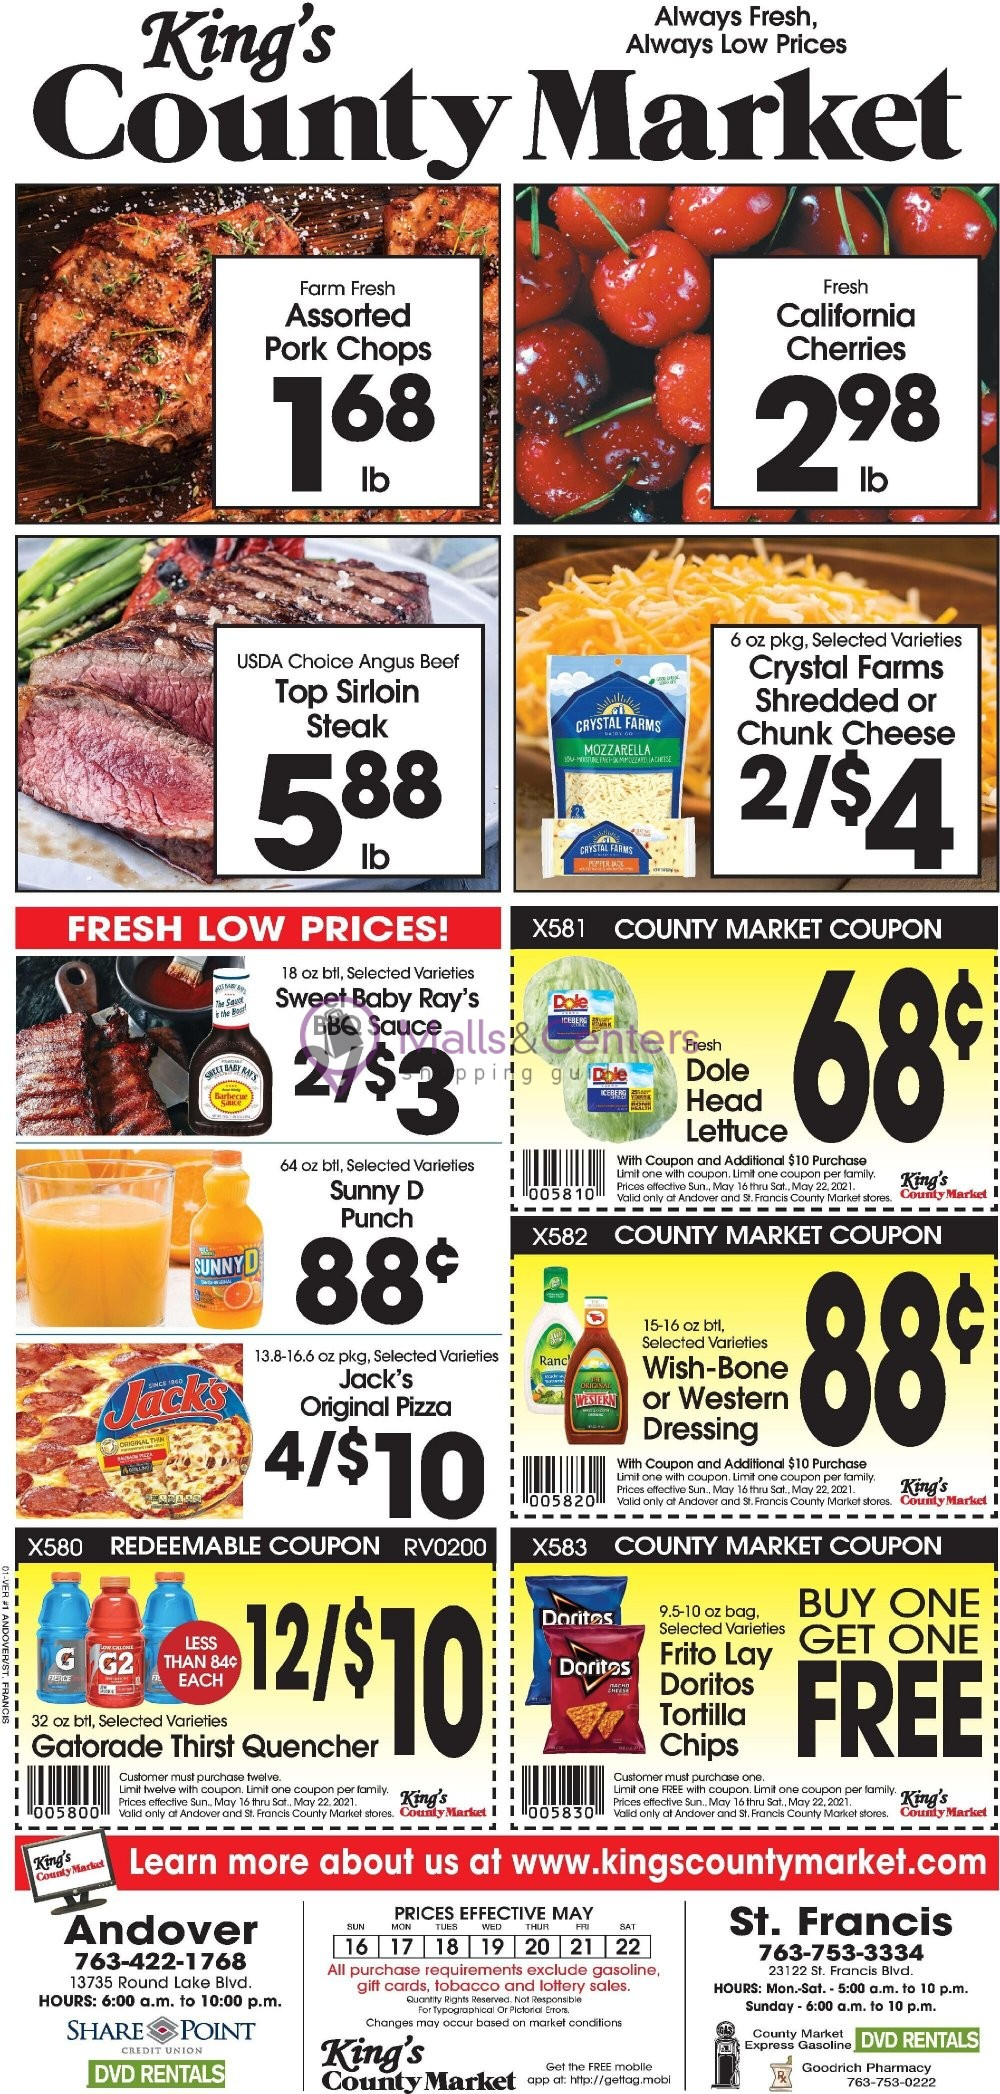 weekly ads King's County Market - page 1 - mallscenters.com